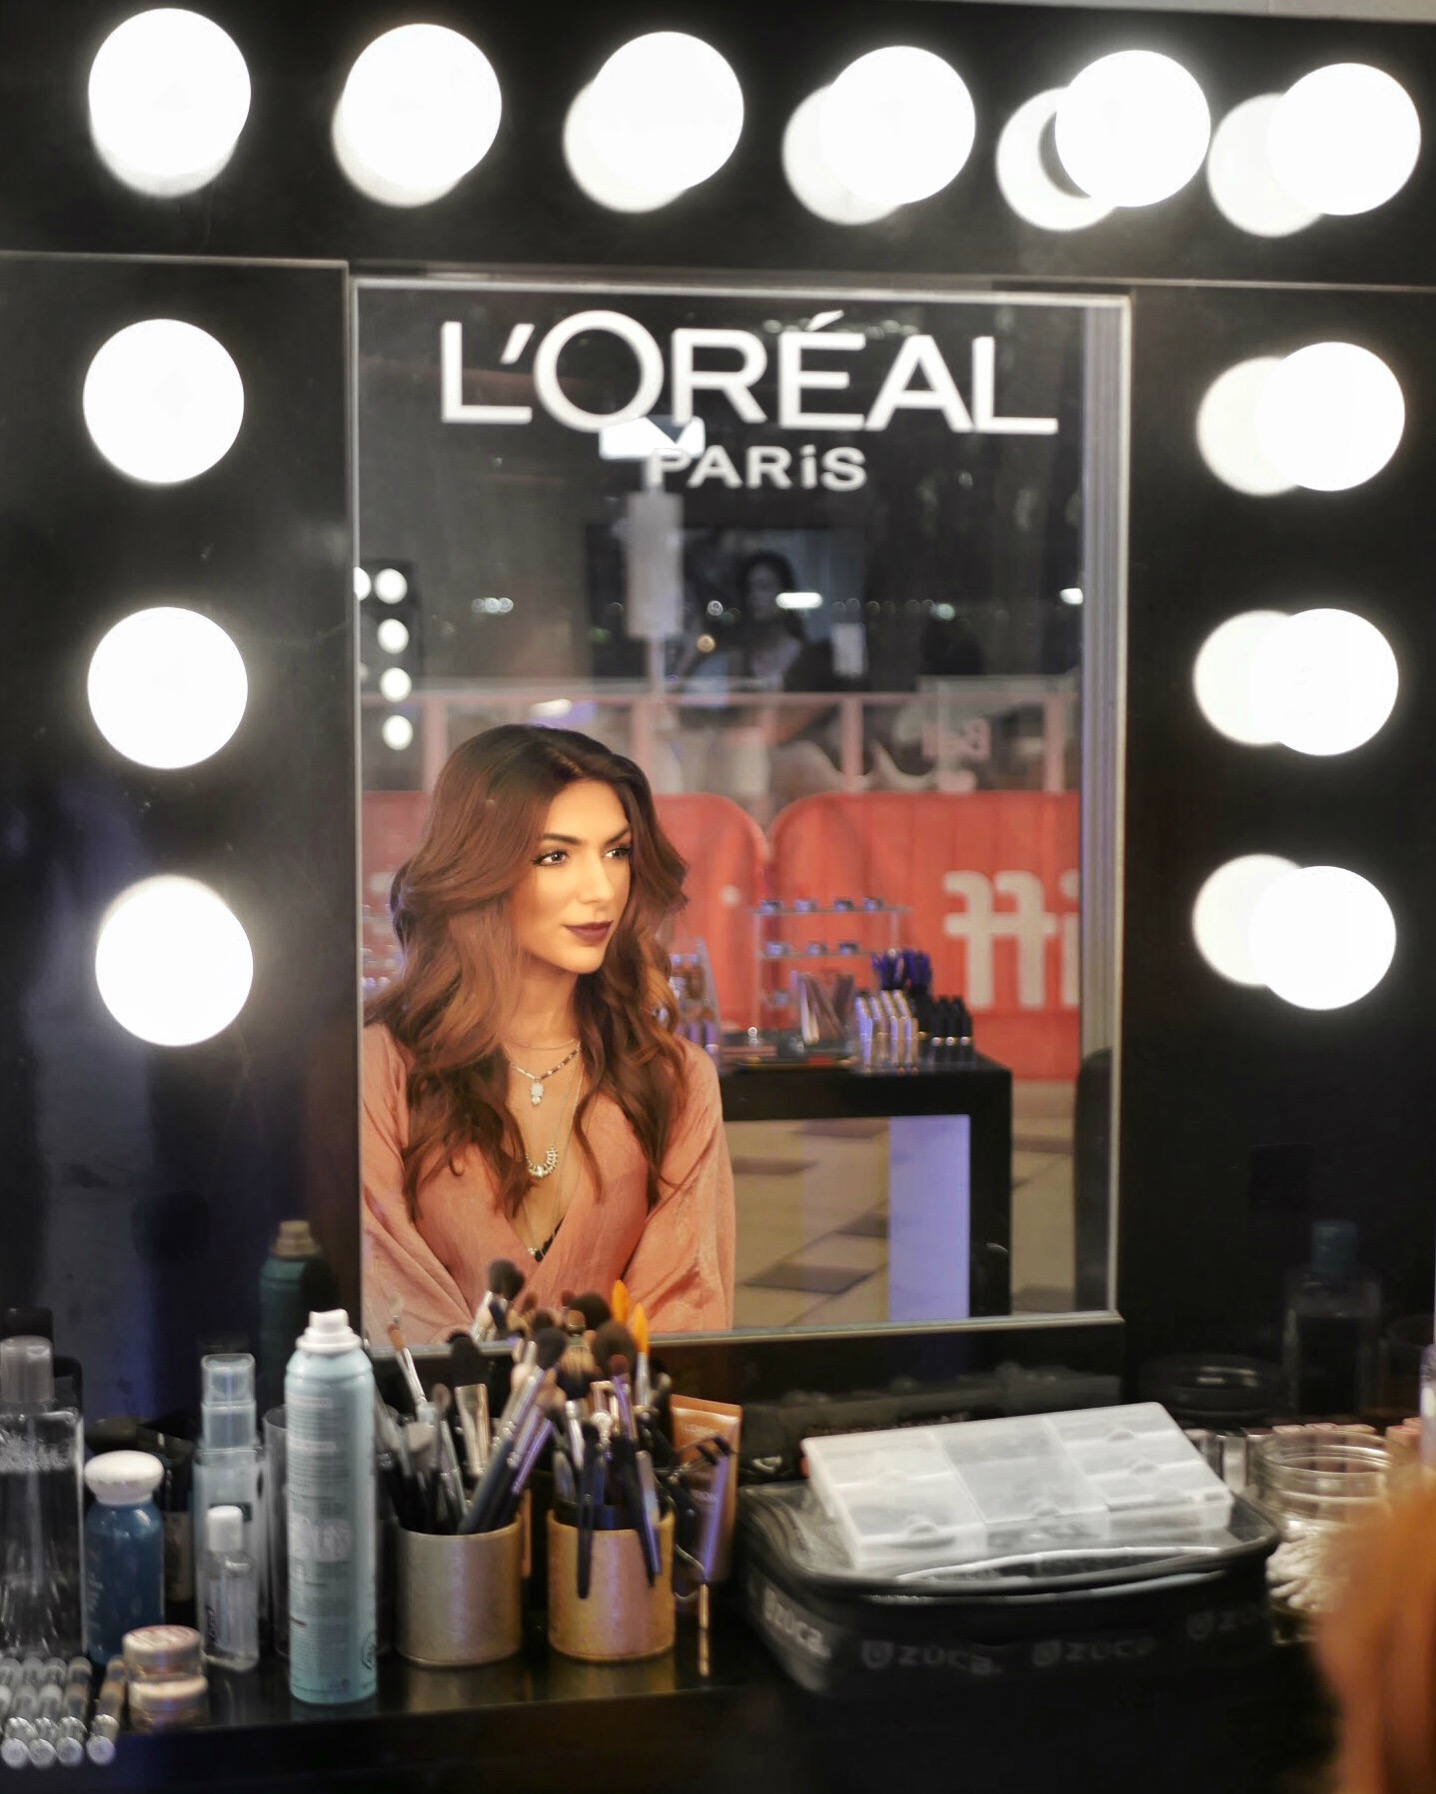 Film Festival Glam in the L'Óréal Beauty Suite - - Beauty The Beauty Suite at the Toronto International Film Festival takes us behind all the red carpet action where the stars and influencers go to get ready before a big night on the town!